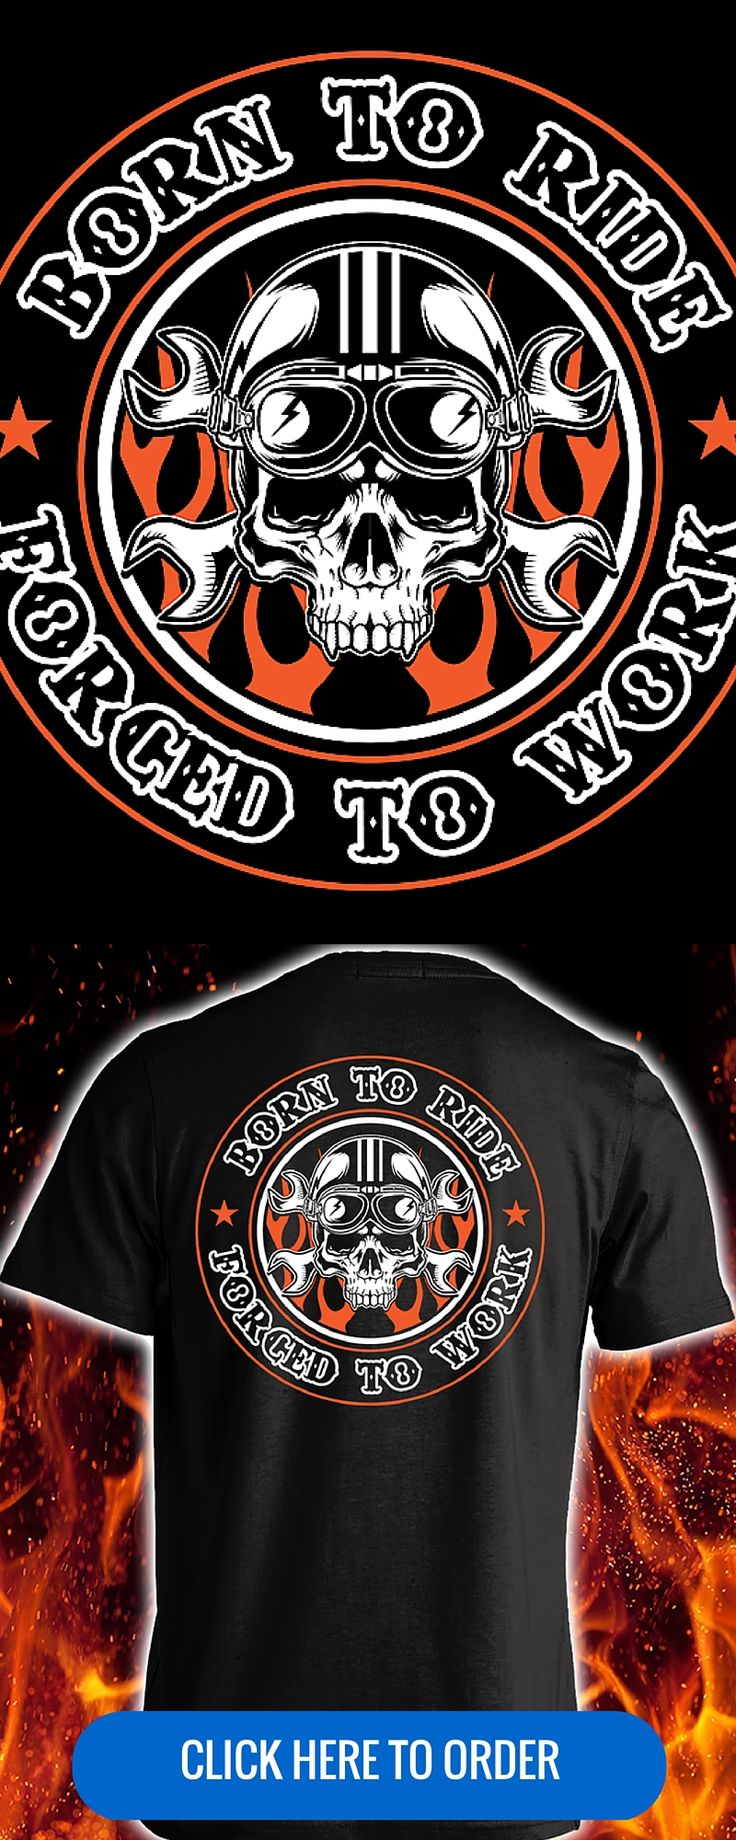 Born To Ride, Forced To Work - Men's Biker T-shirt, Long Sleeve, Hoodie. ORDER HERE: http://skullsociety.com/products/born-to-ride-forced-to-work-t-shirt?variant=8211157573&utm_source=pinterest&utm_medium=pin_120815_159&utm_campaign=120815